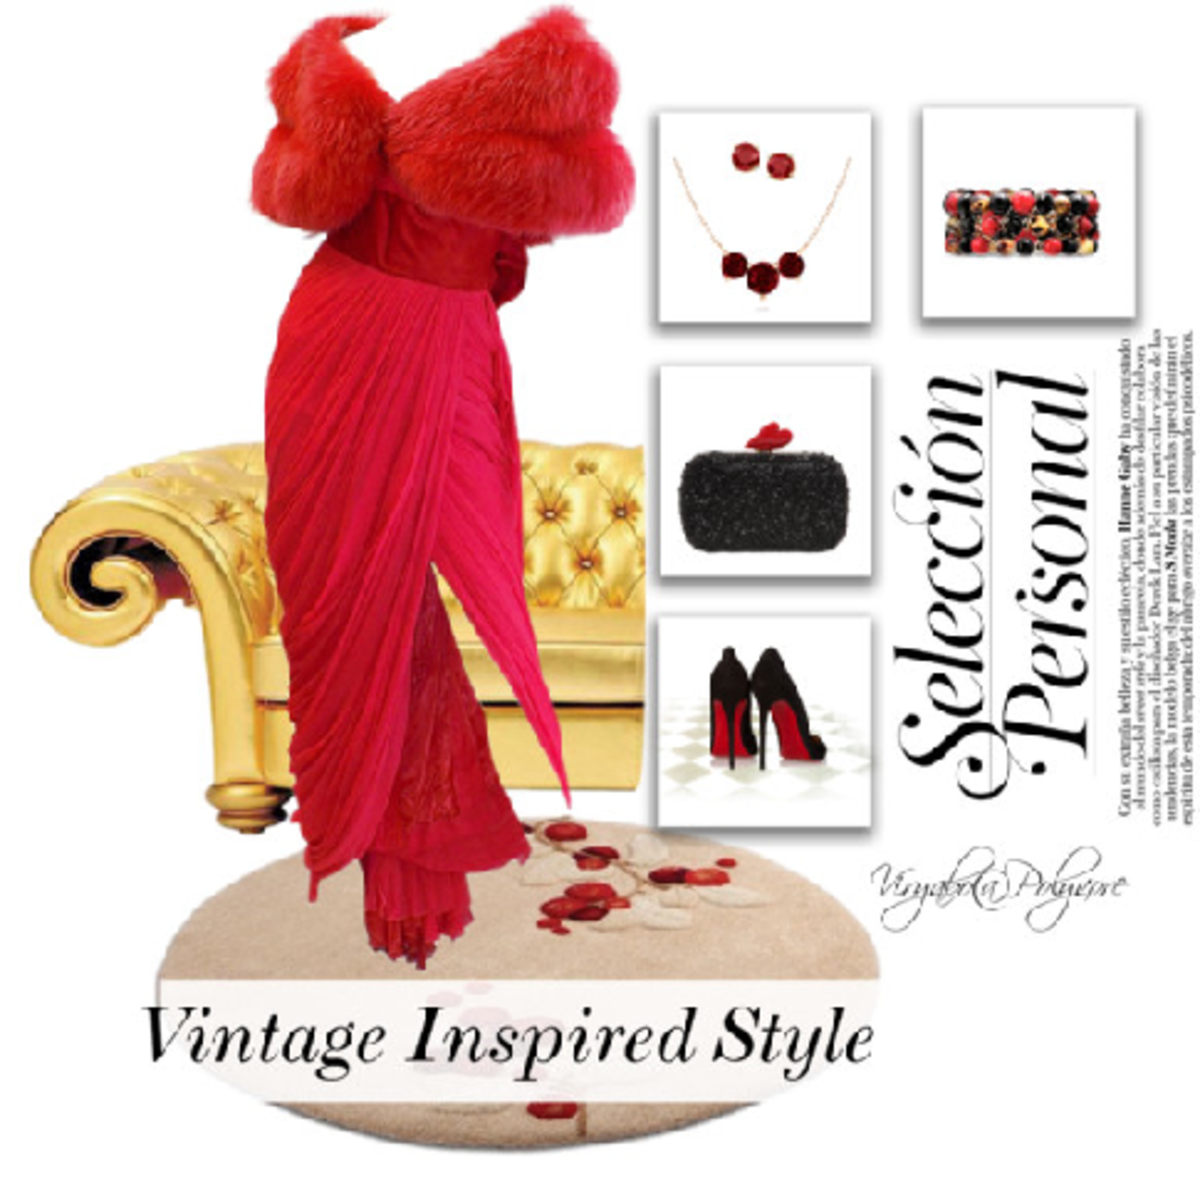 How to Create a Vintage Inspired Style